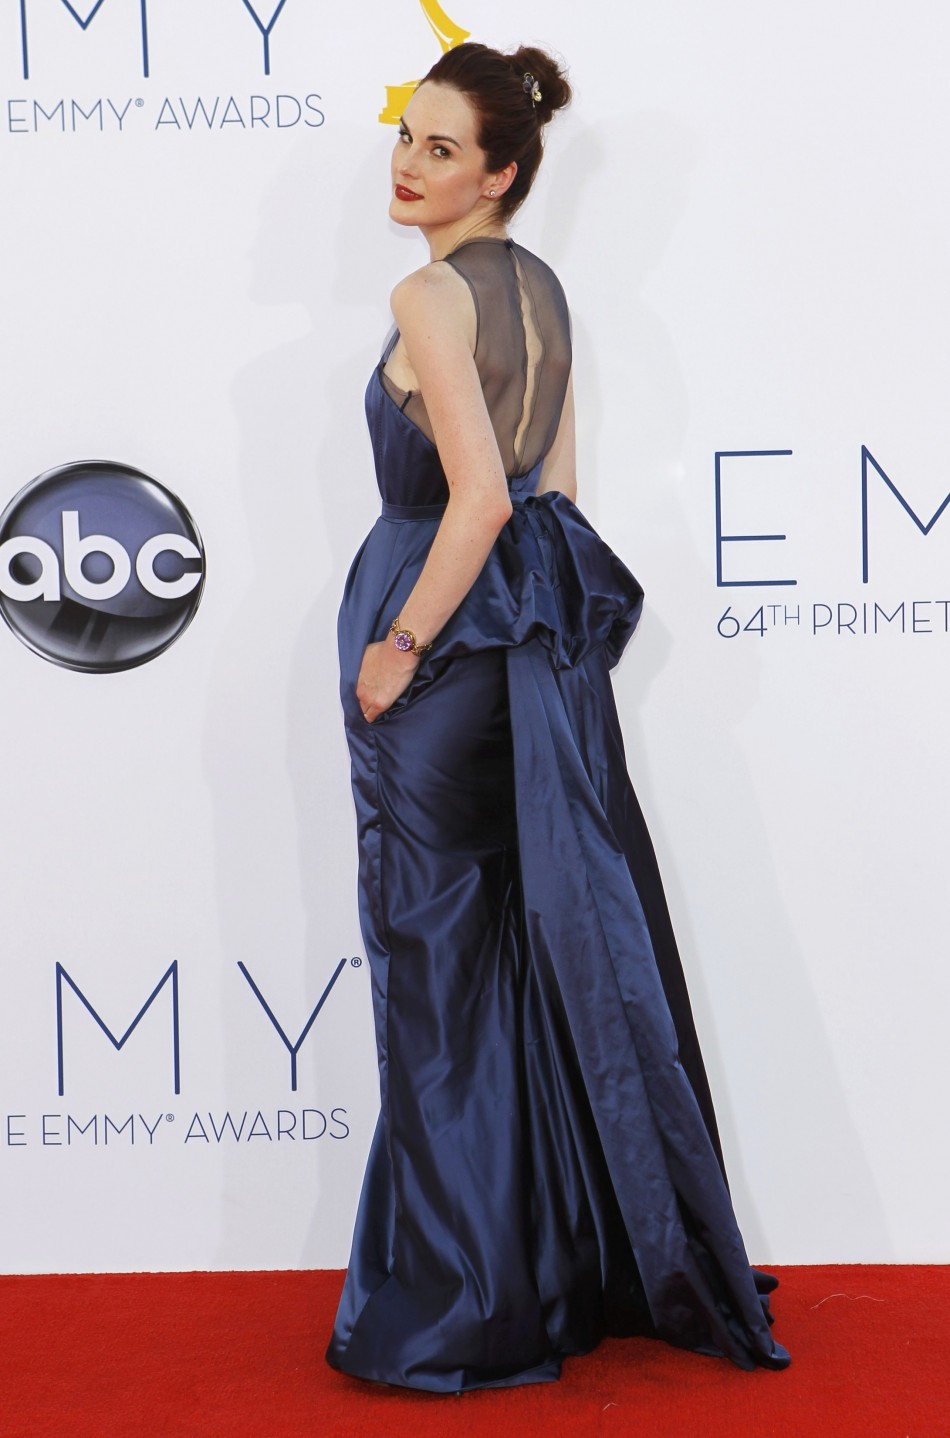 Actress Michelle Dockery arrives at the 64th Primetime Emmy Awards in Los Angeles